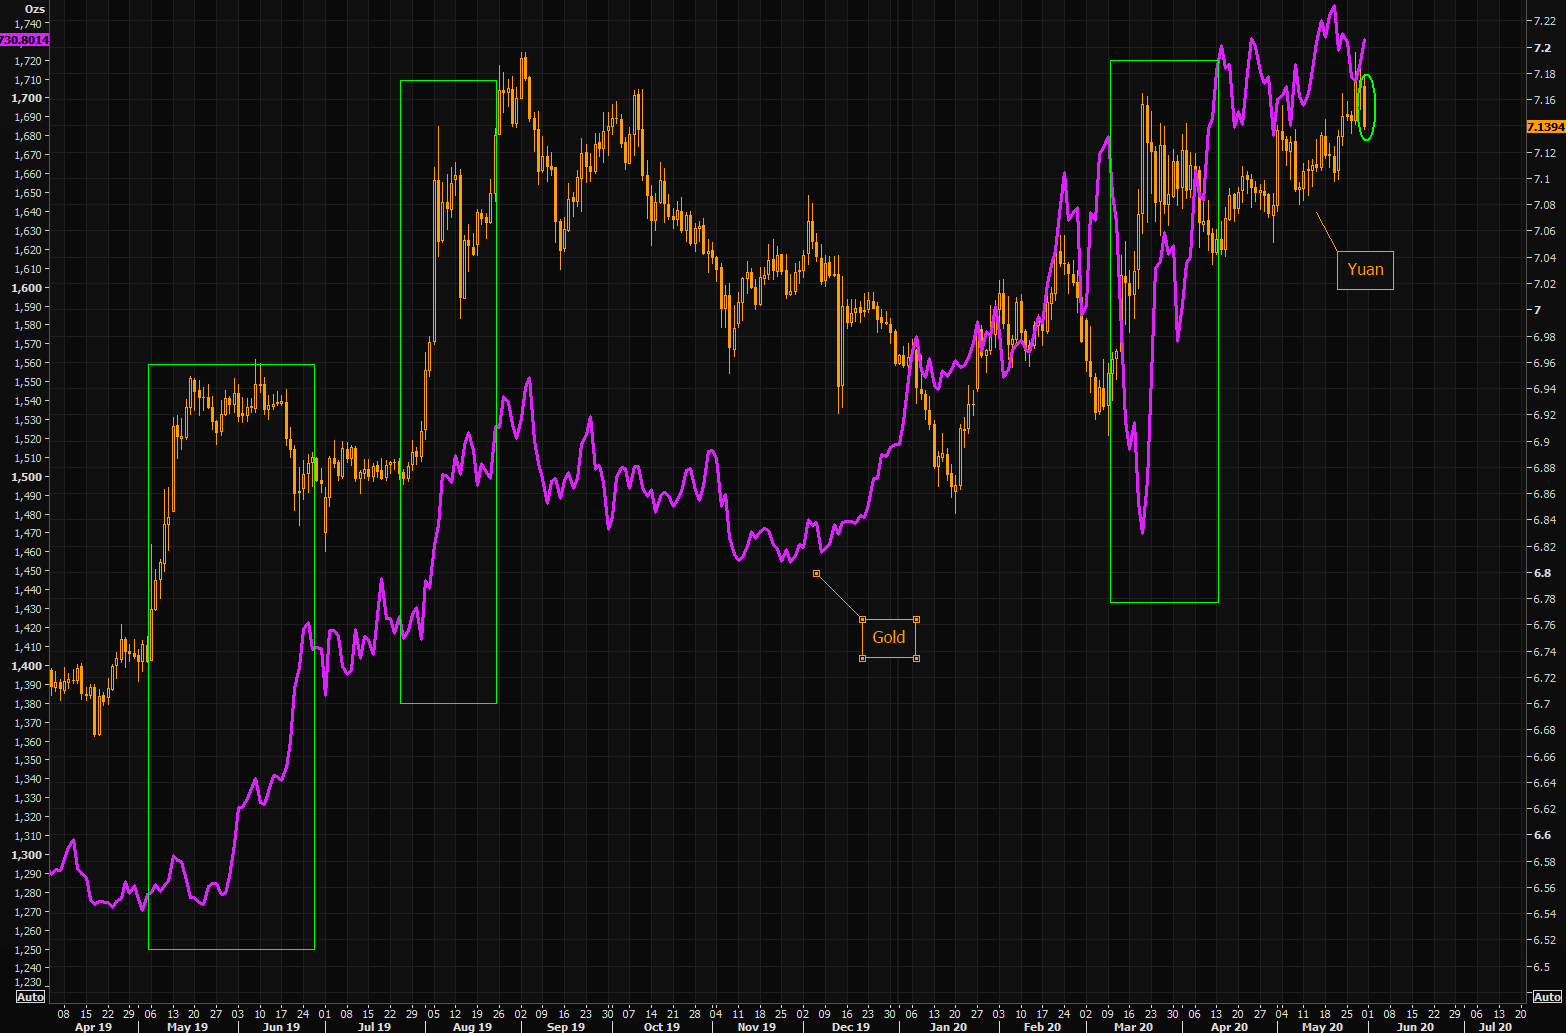 Mighty Yuan - strongest day for the Yuan in a long time, implications for gold?